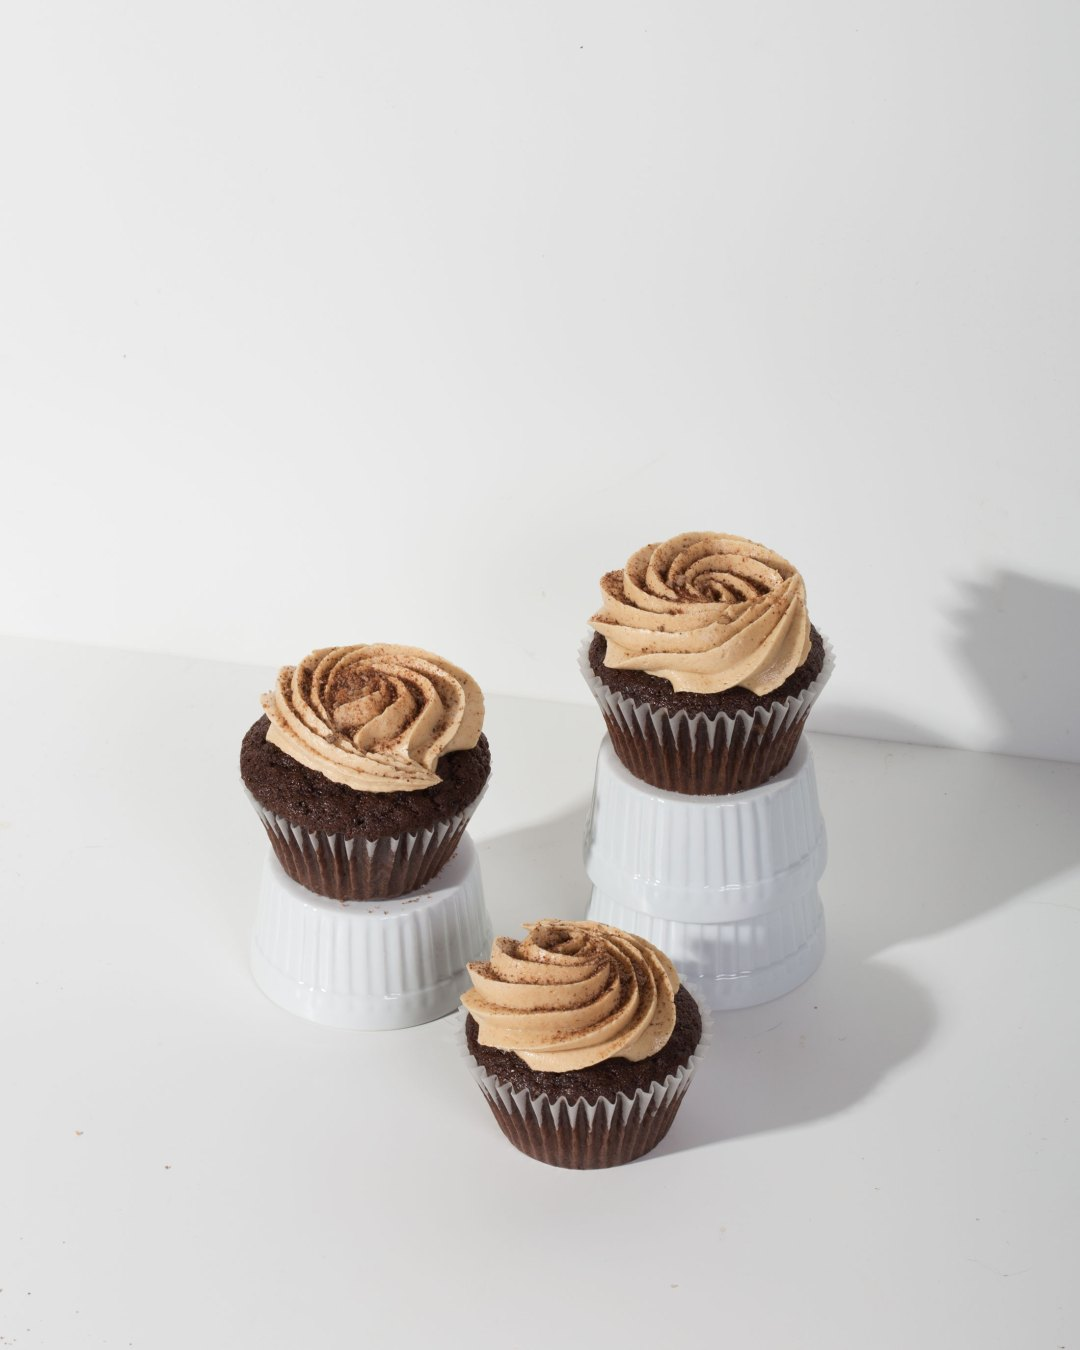 Abuelita Chocolate Cupcakes with Peanut Butter Frosting – Chicano Eats